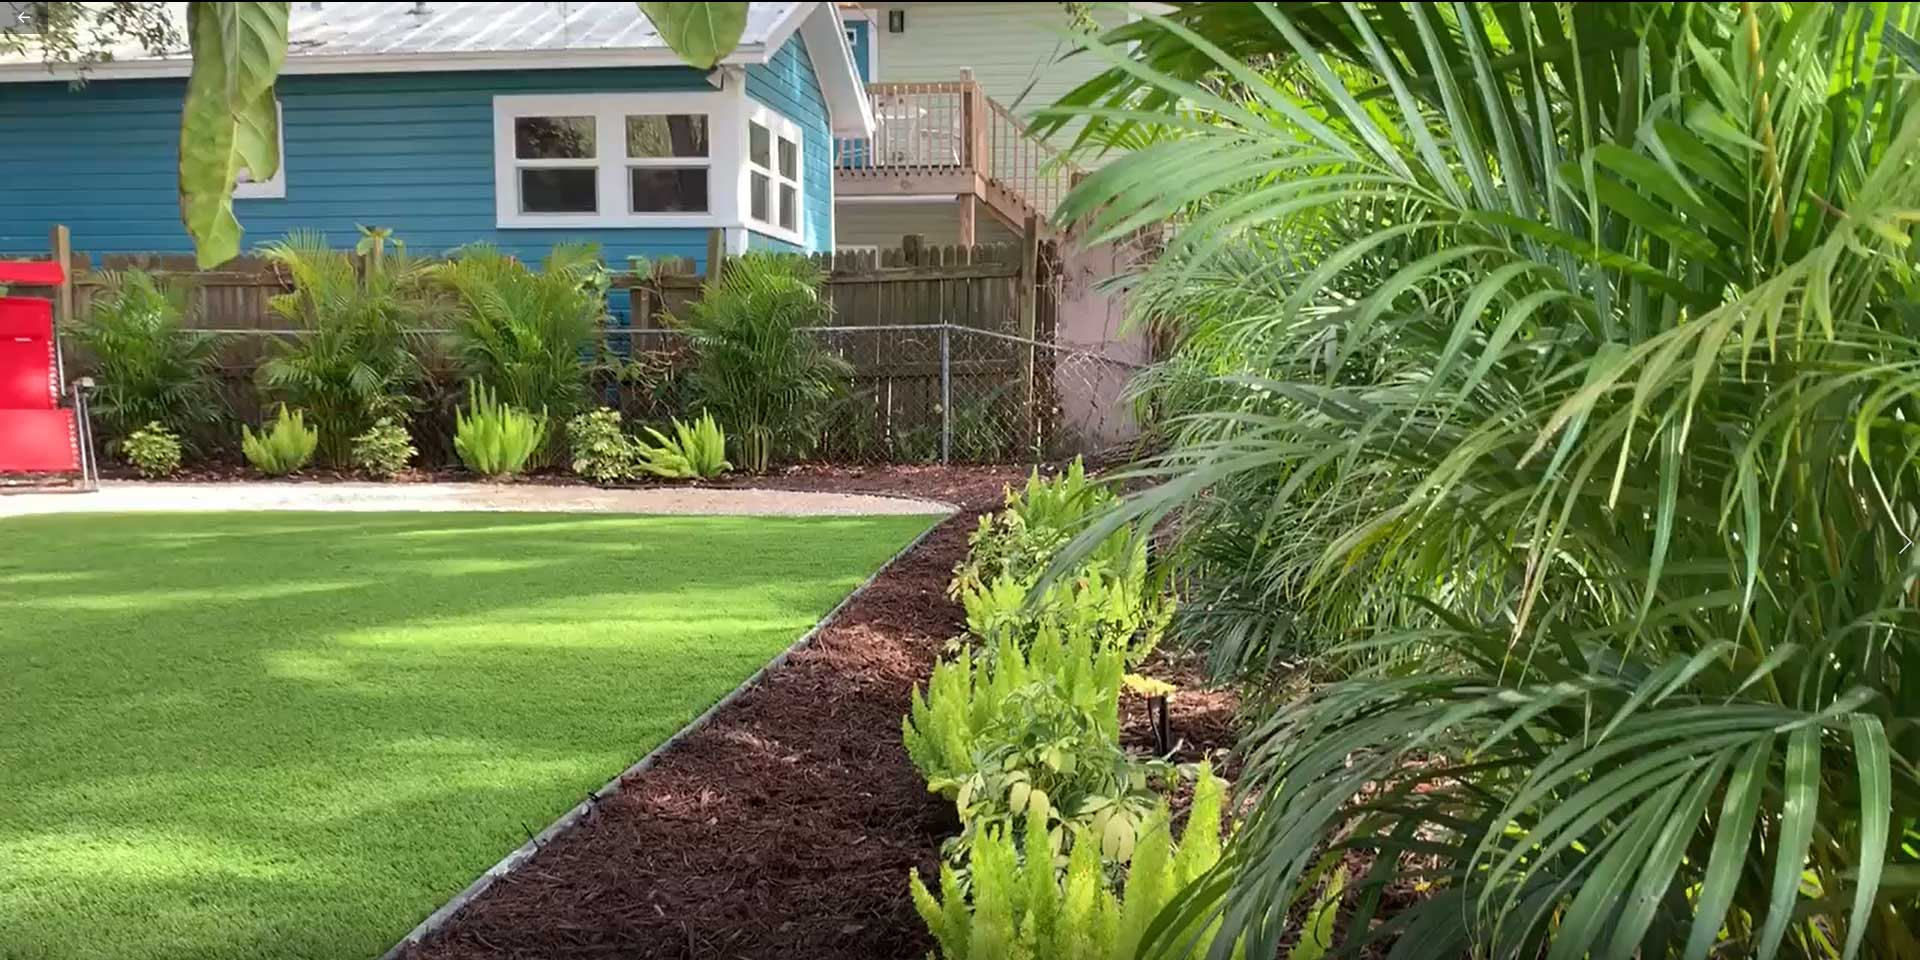 Tropical landscaping and lawn care services in Sarasota, Florida.